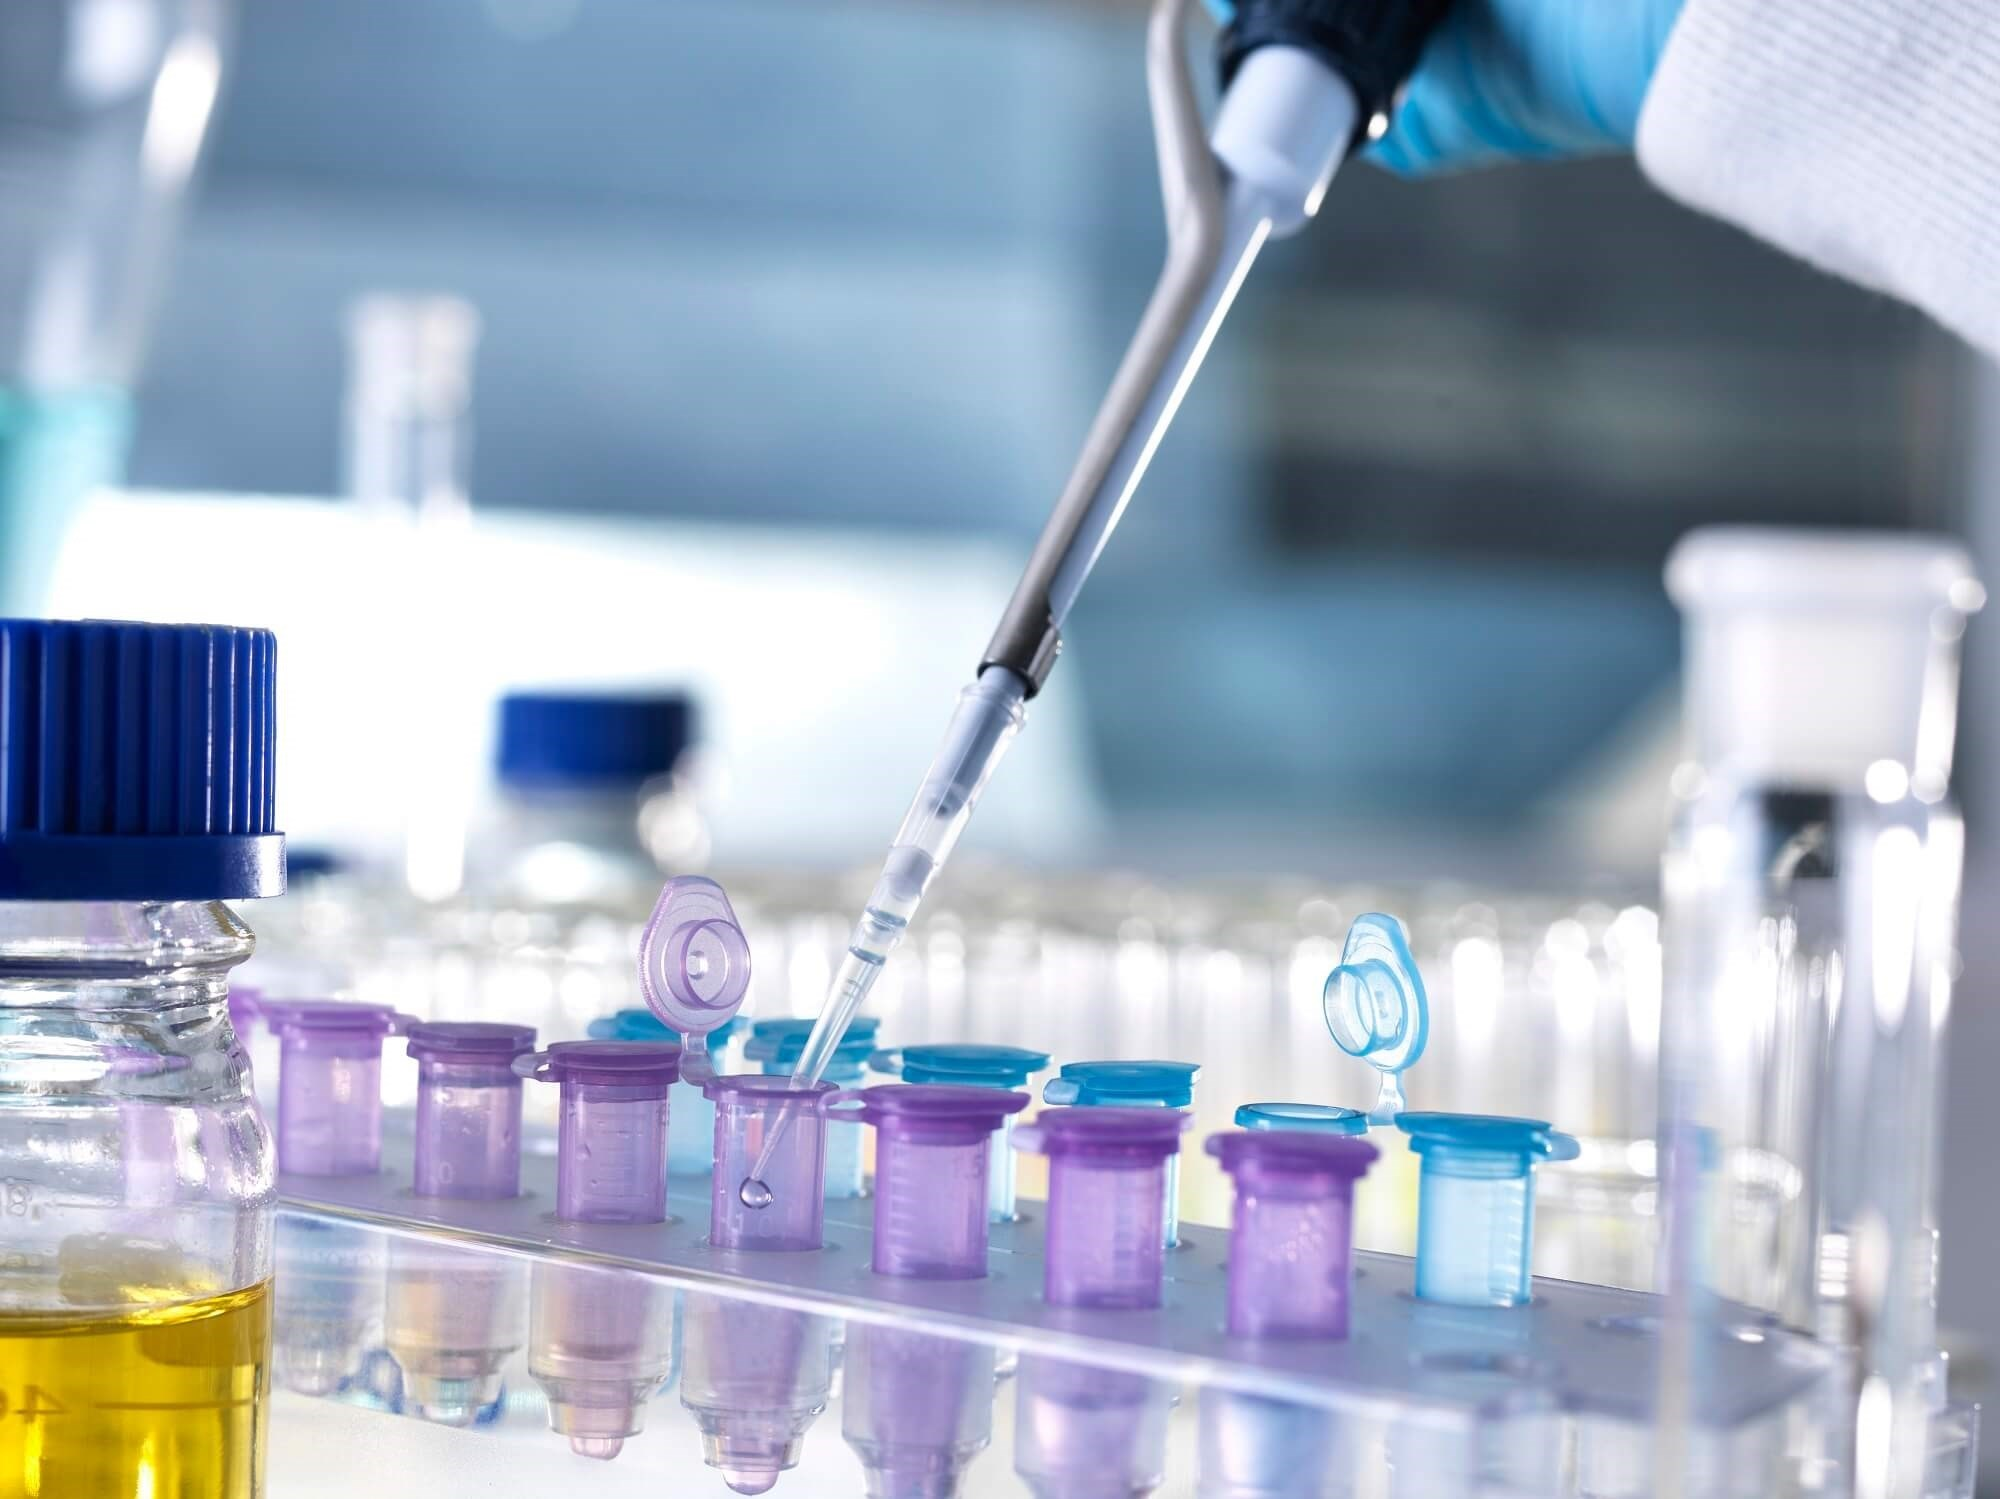 Cardiac Stem Cell Trial Halted by NHLBI Due to Concerns About Fabricated Data